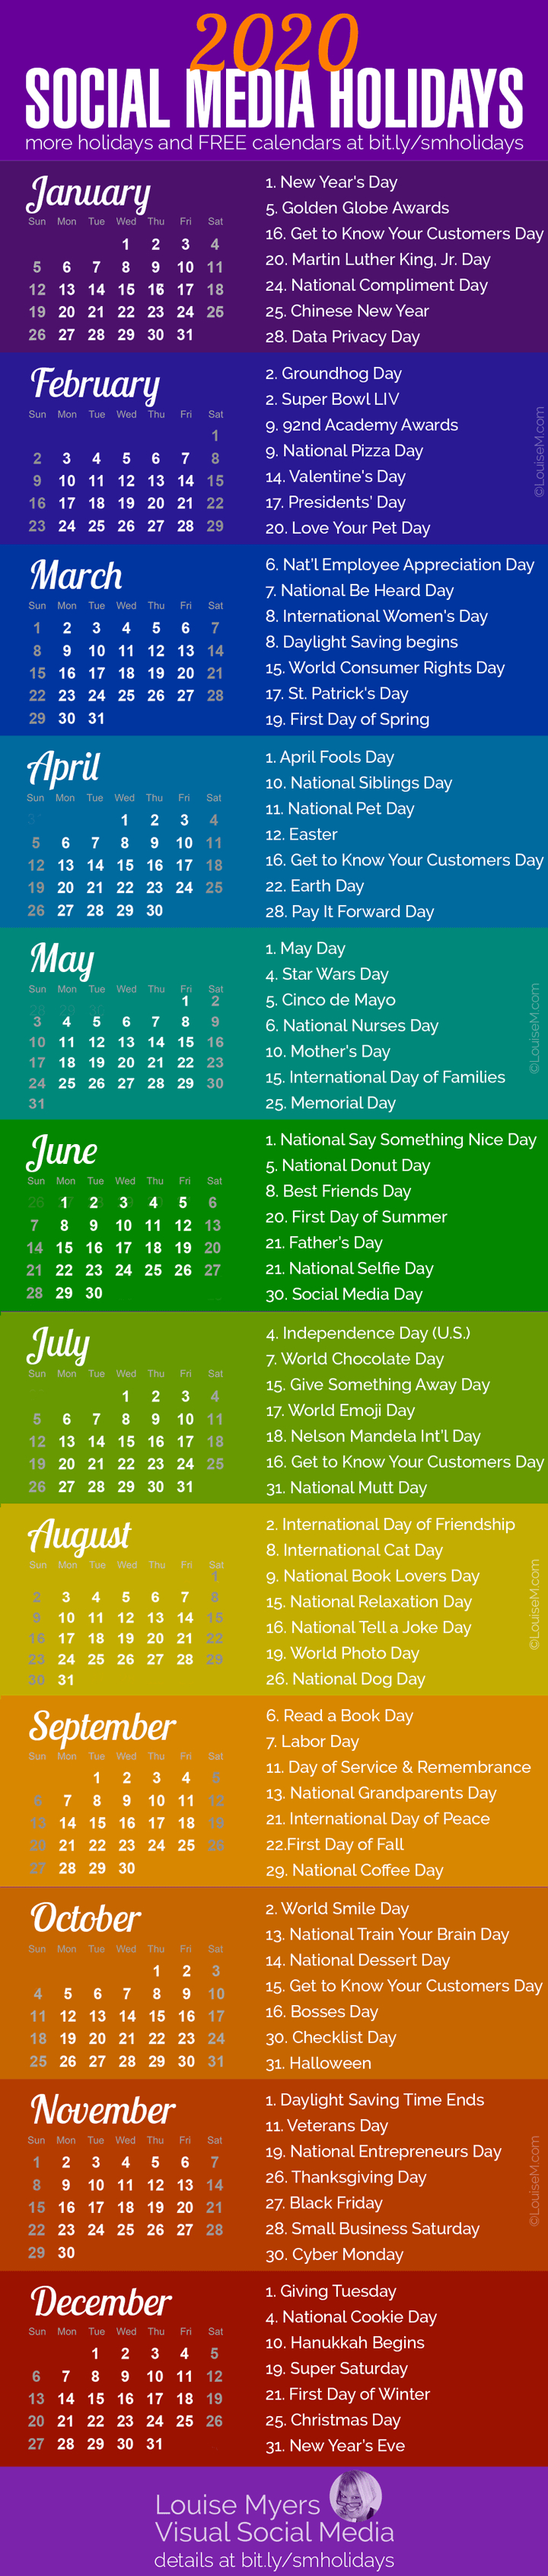 84 Social Media Holidays You Need In 2020: Indispensable! with National Days June 2020